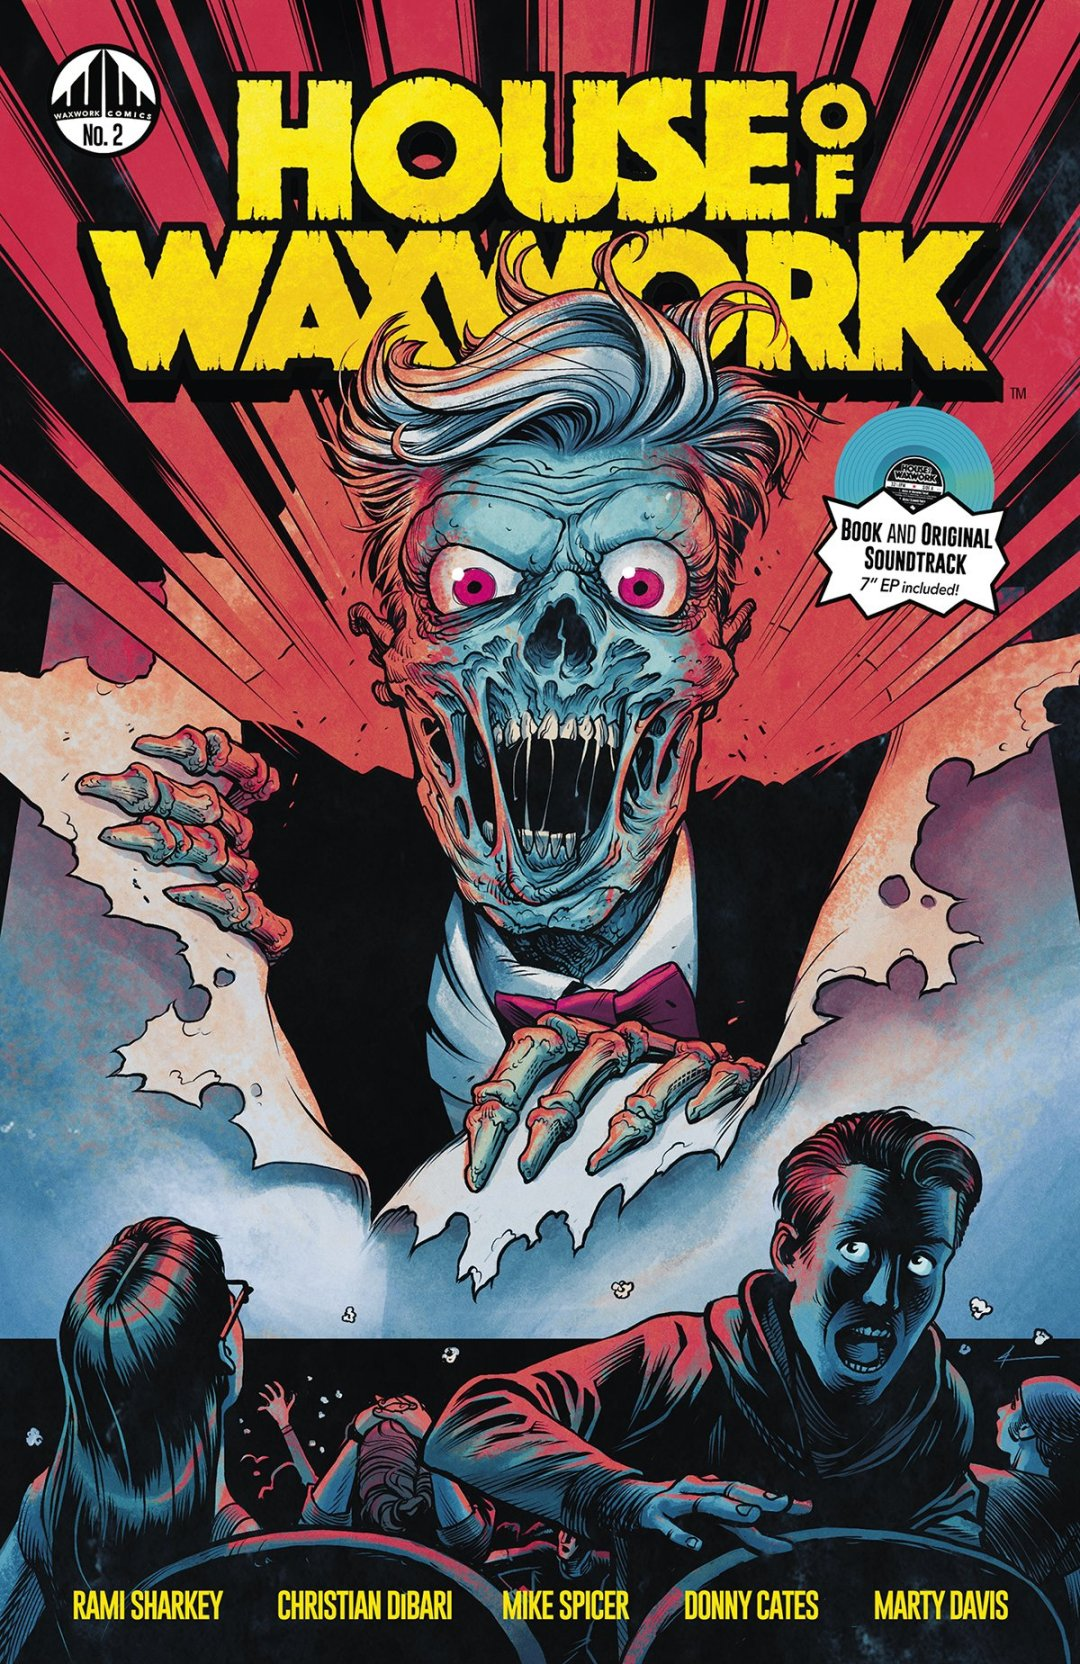 'House of Waxwork' Issue #2 is Treating Us to the Zombie Apocalypse and More!